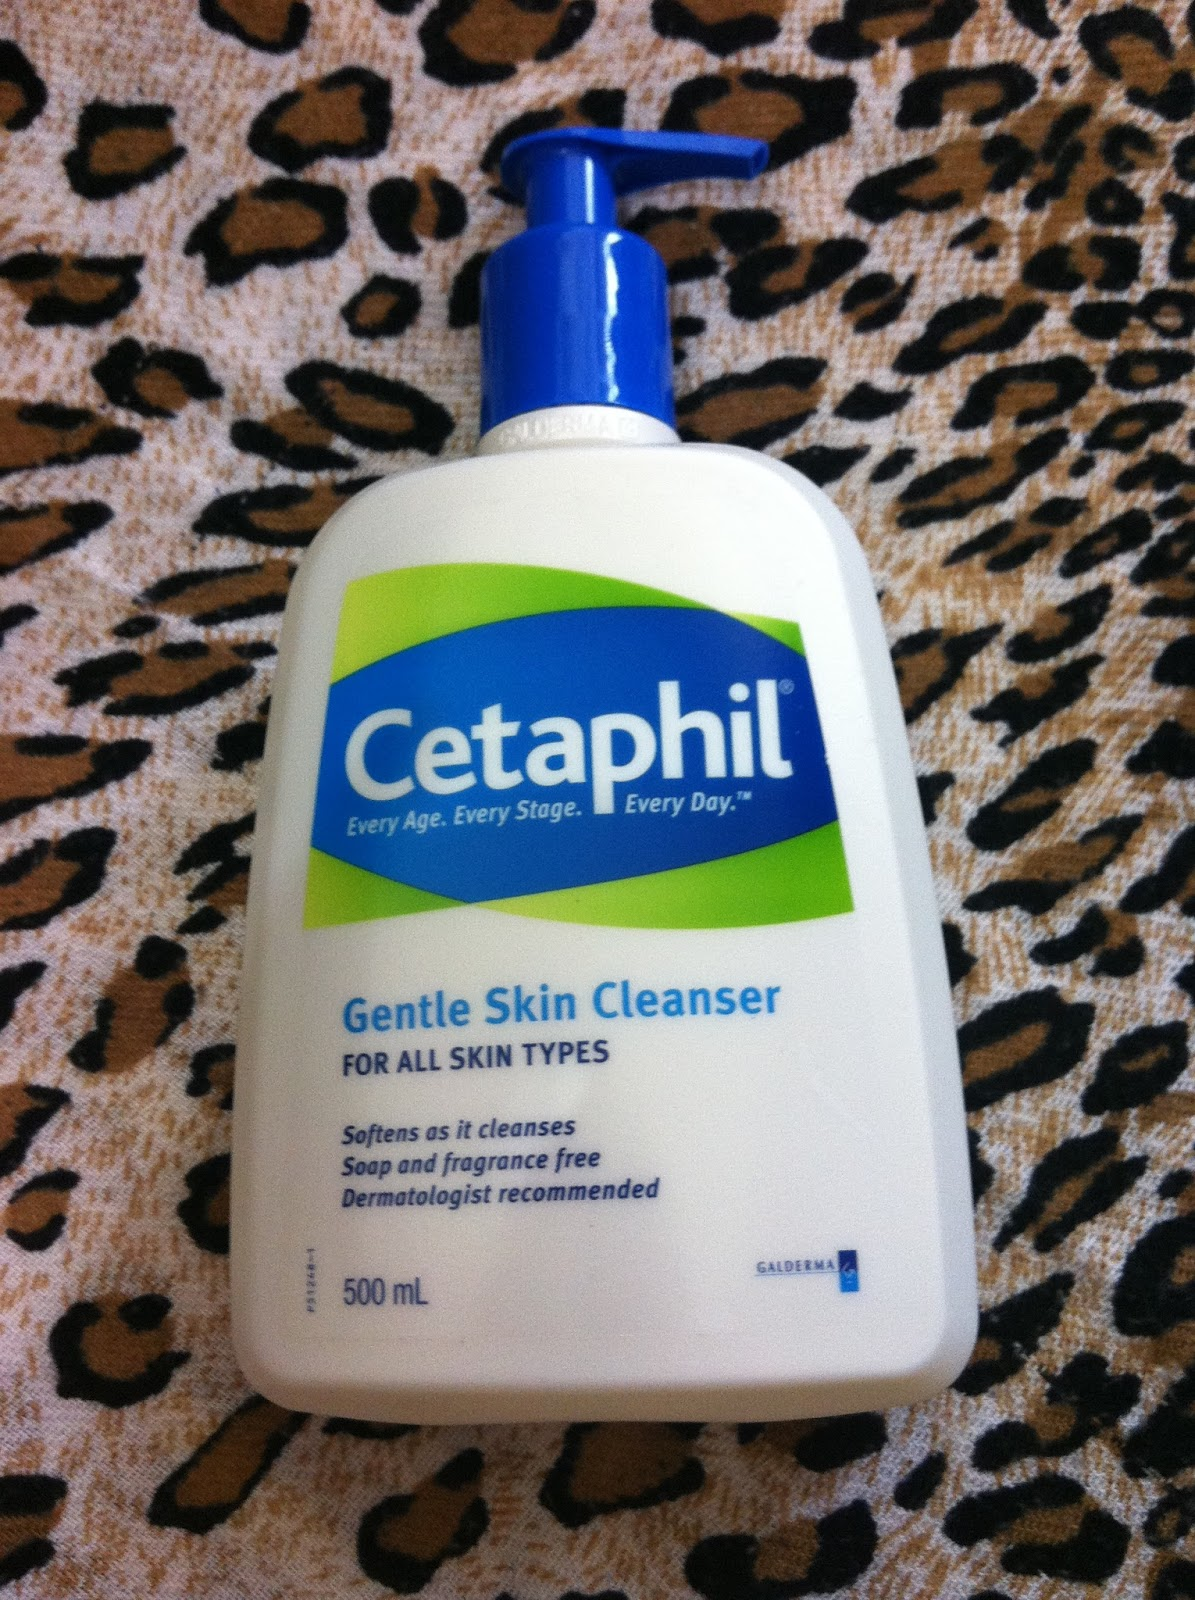 Beauti Frenzy Review Cetaphil Oily Skin Cleanser Gentle 500 Ml Khng Mi H C Bt Ra Mt Xong Lm Da B Cng V Du Nh Gy L Chn Lng